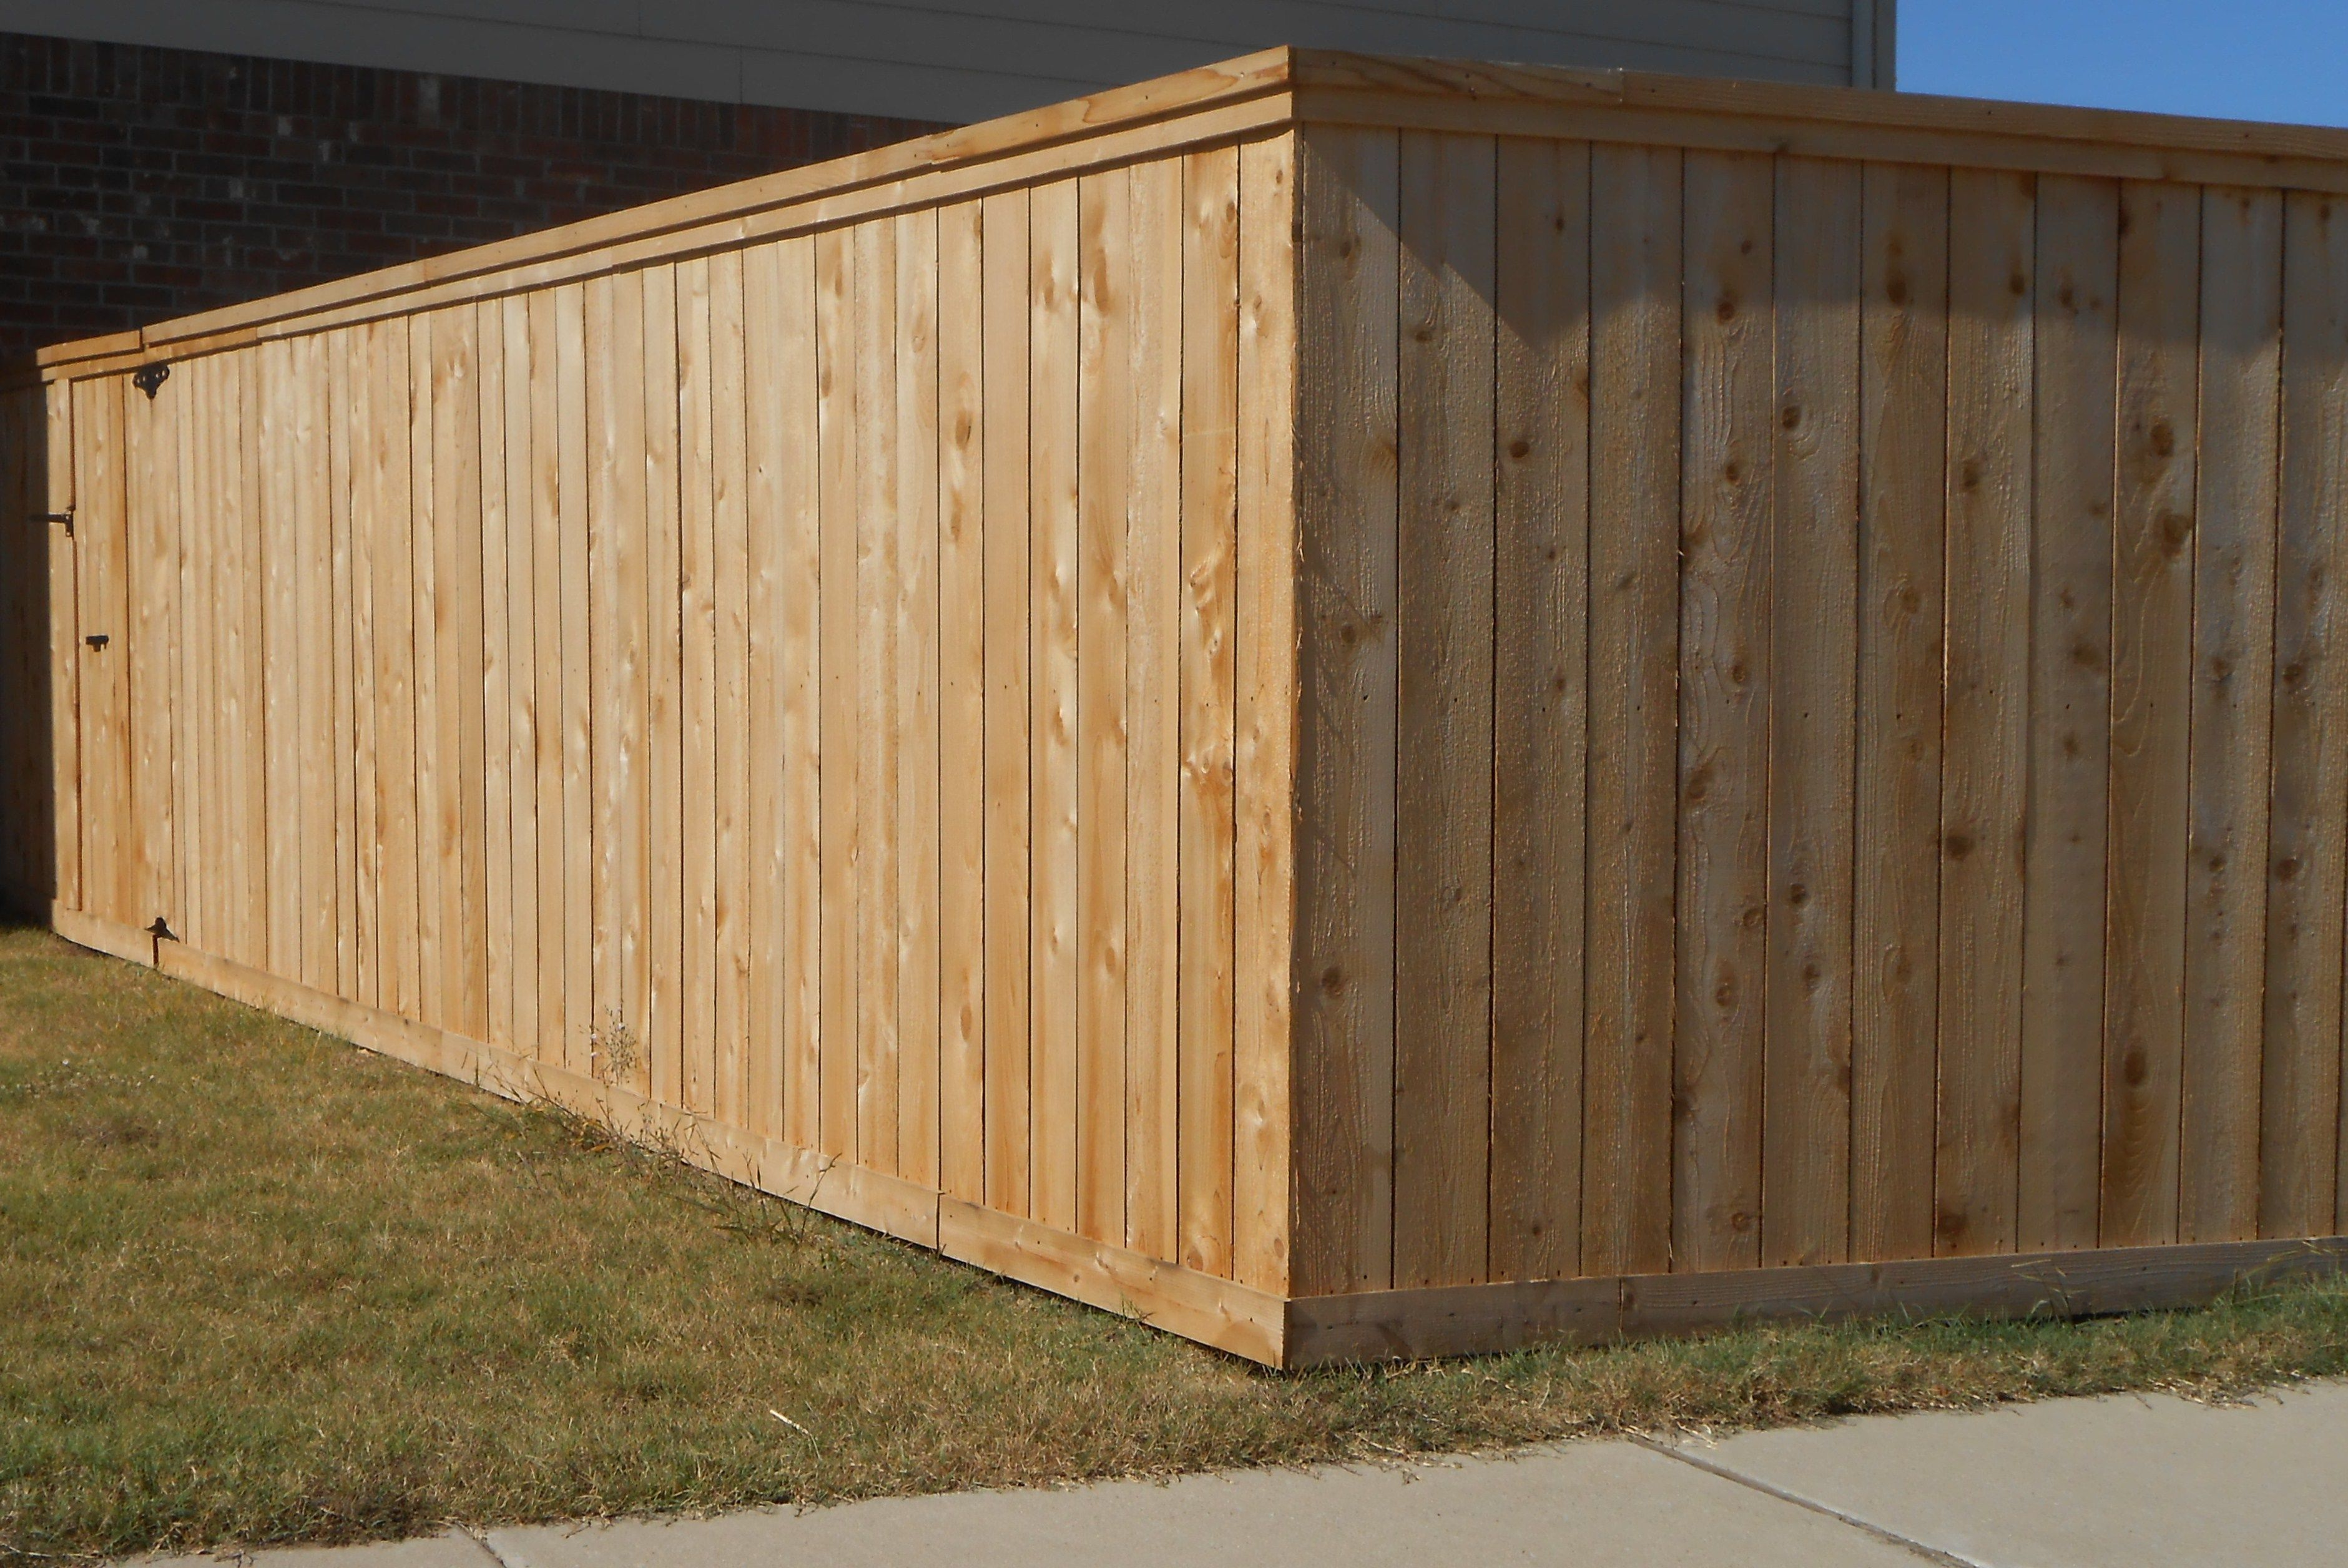 5 Amazing And Unique Tips And Tricks Fencing Patio Ideas Wooden Fence Images Wooden Fence Images Wooden Fe In 2020 Rustikaler Zaun Balkon Zaun Moderner Zaun